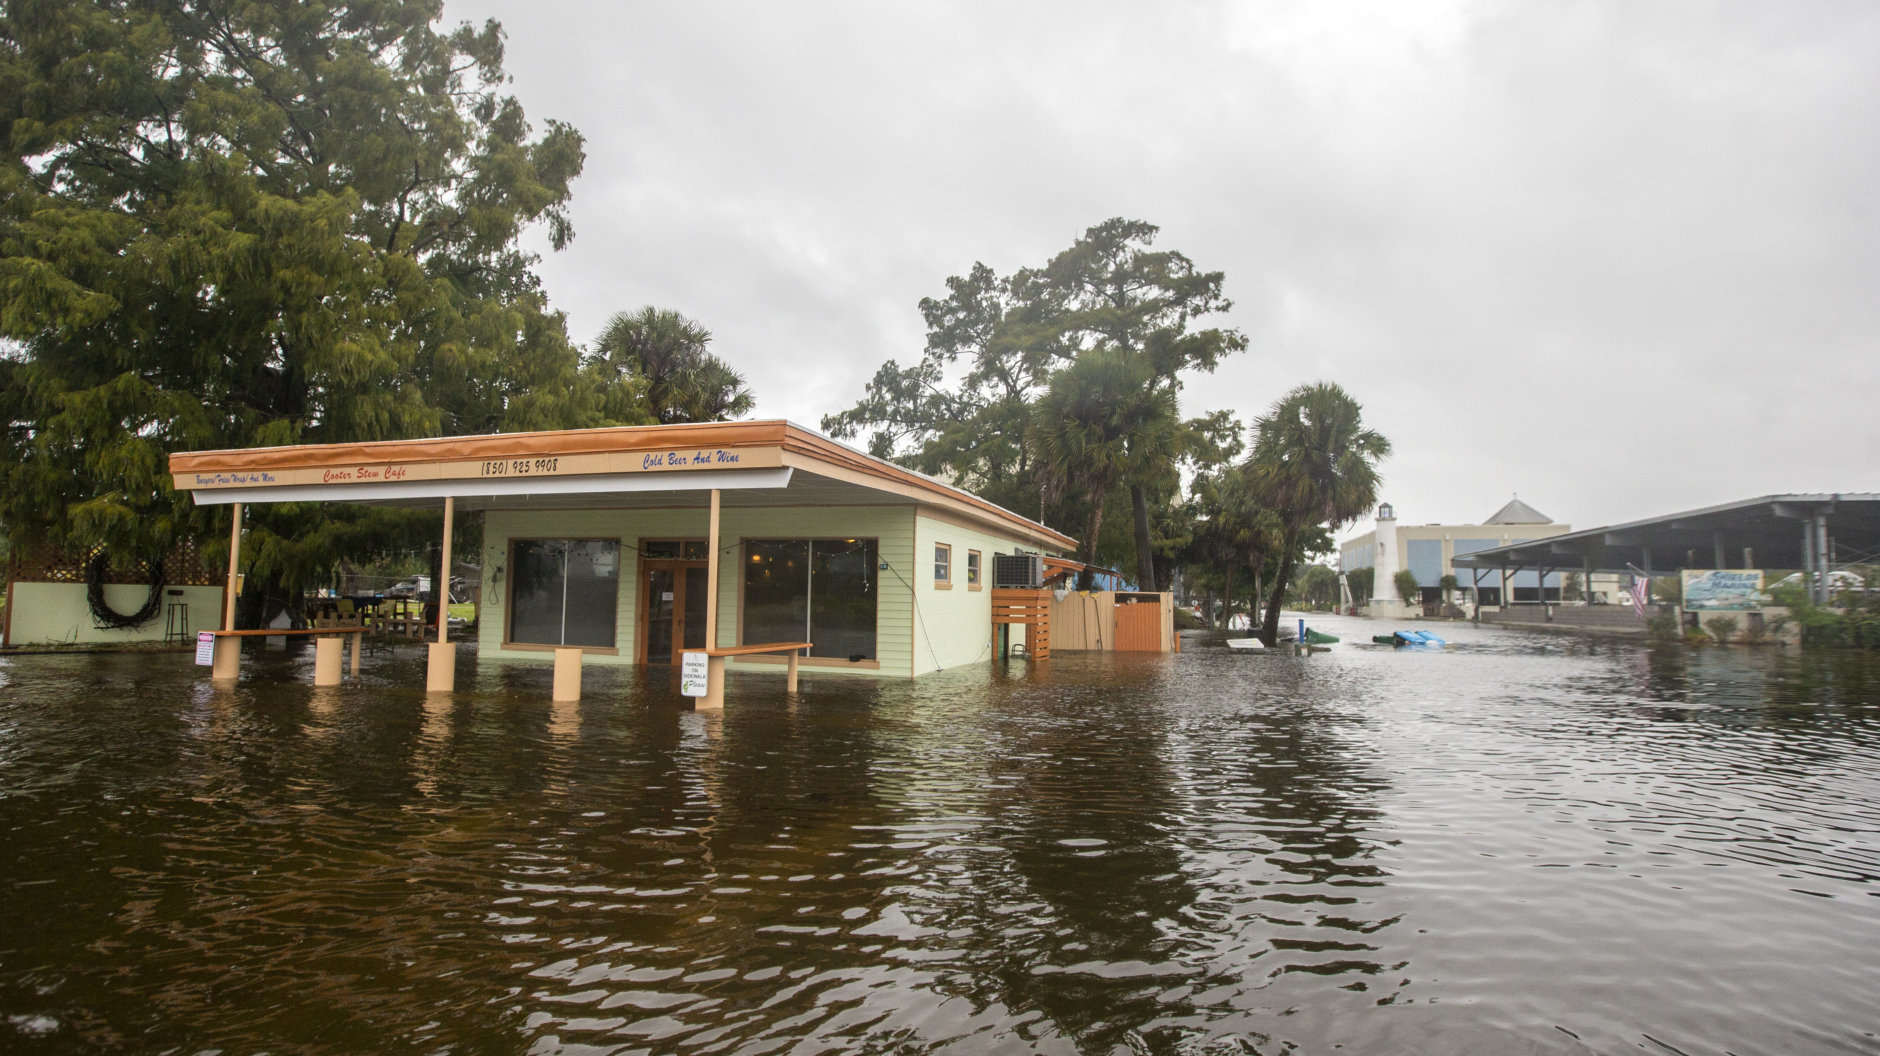 SAINT MARKS, FL - OCTOBER 10: The Cooter Stew Cafe starts taking water in the town of Saint Marks as Hurricane Michael pushes the storm surge up the Wakulla and Saint Marks Rivers which come together here on October 10, 2018 in Saint Marks, Florida.  The hurricane is forecast to hit the Florida Panhandle at a possible category 4 storm.  (Photo by Mark Wallheiser/Getty Images)